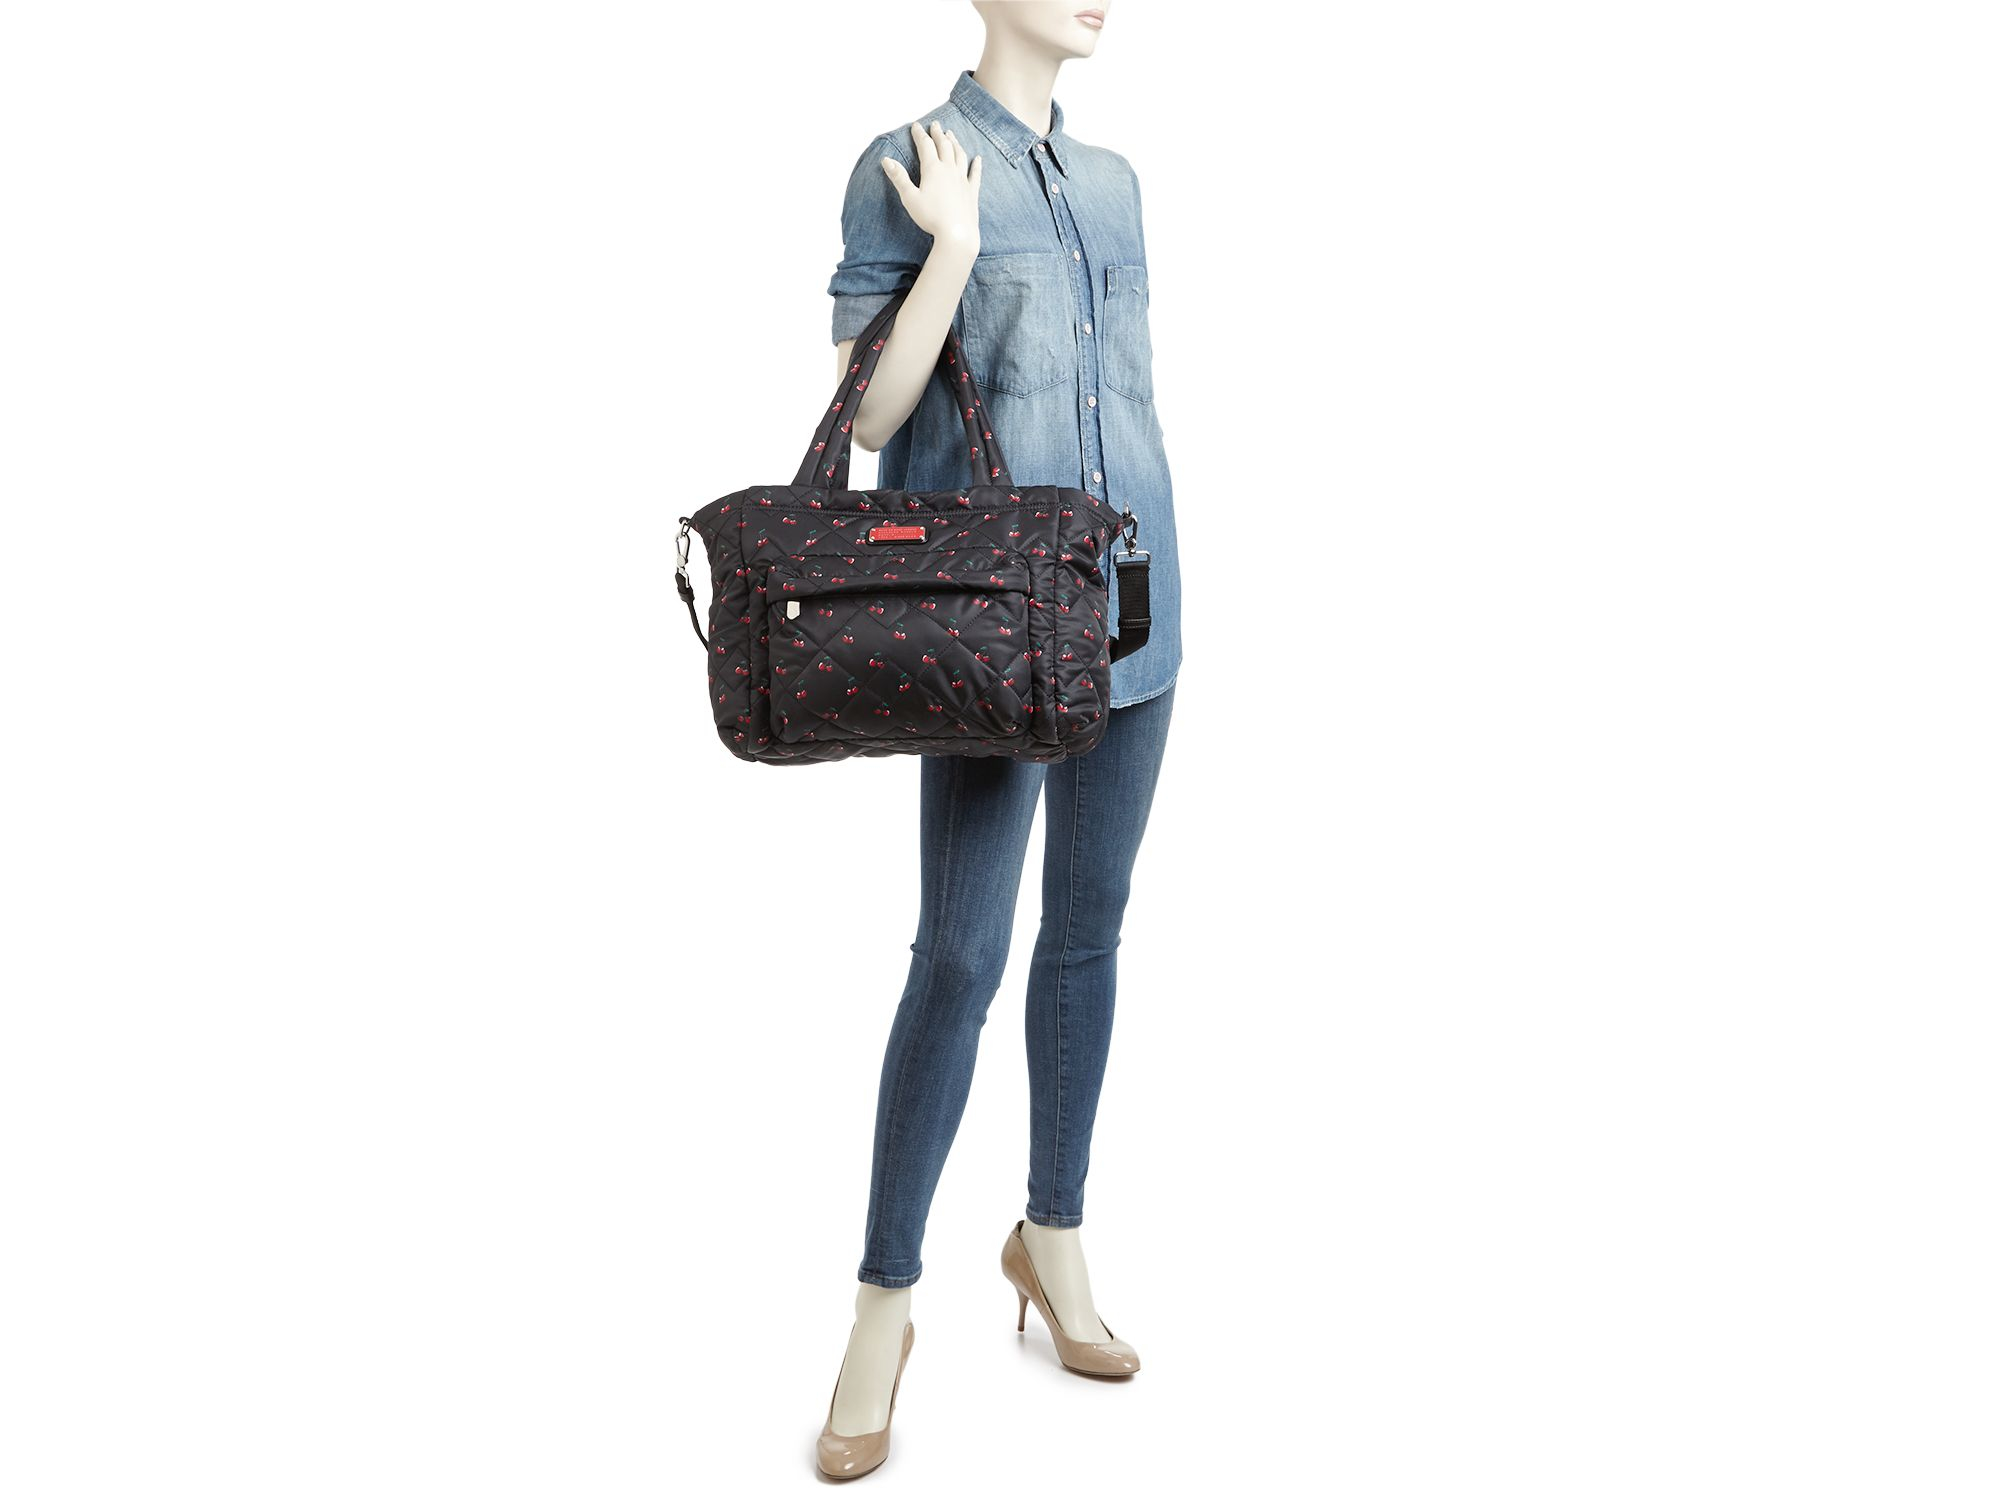 959f13076da Marc By Jacobs Crosby Quilted Cherry Print Elizababy Diaper Bag